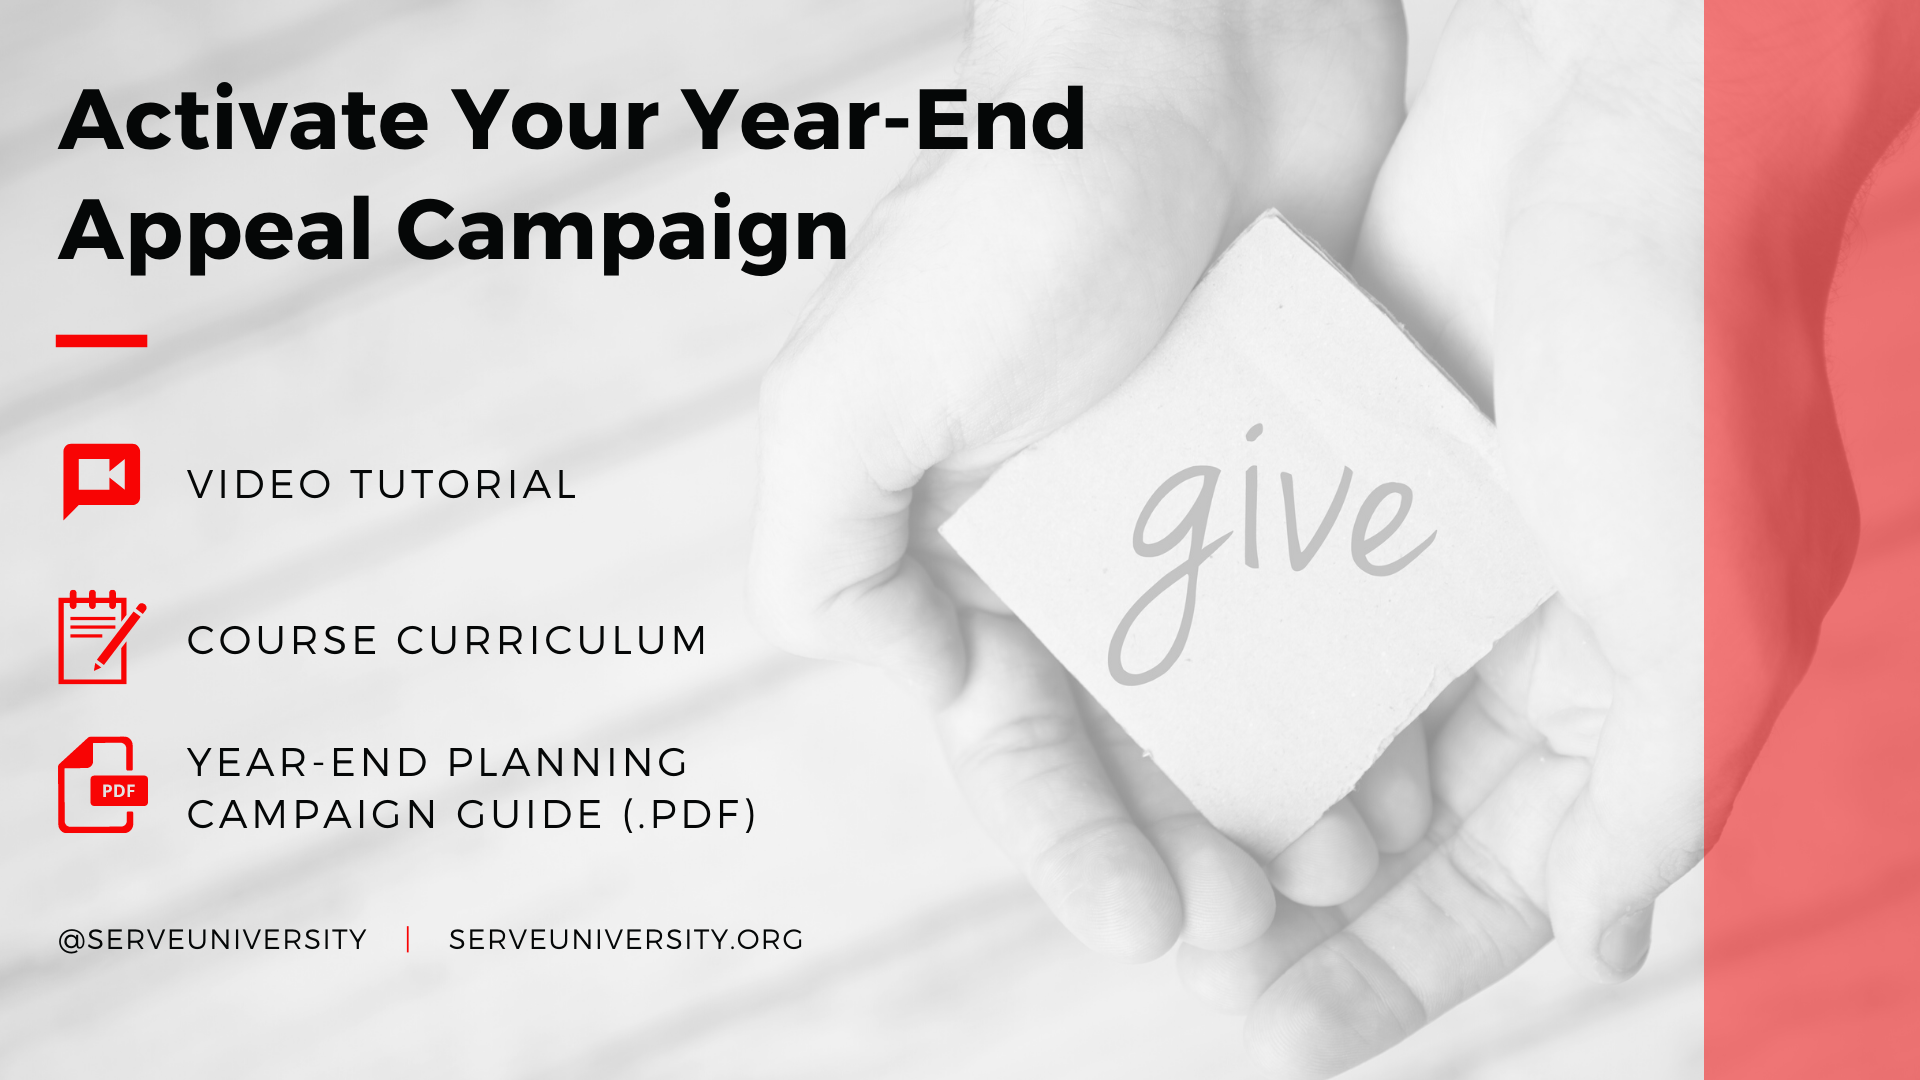 Activate Your Year-End Appeal Campaign